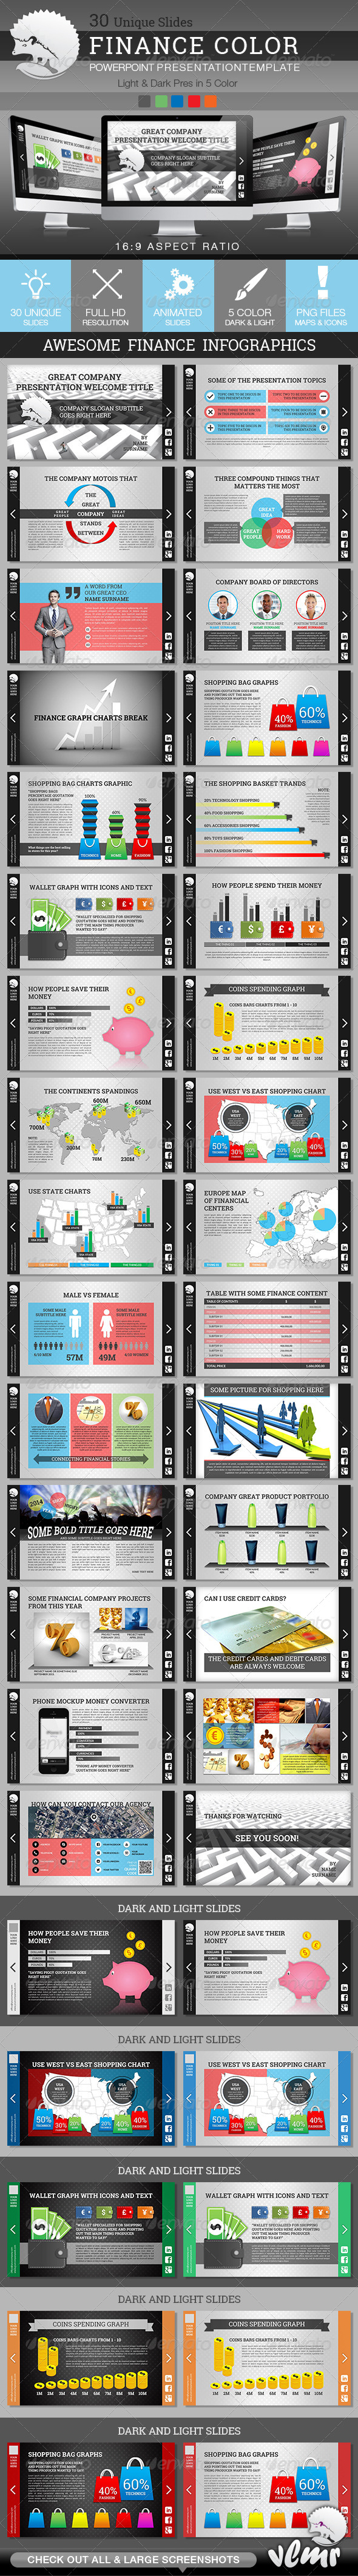 GraphicRiver Finance Color PowerPoint Presentation Template 6800339